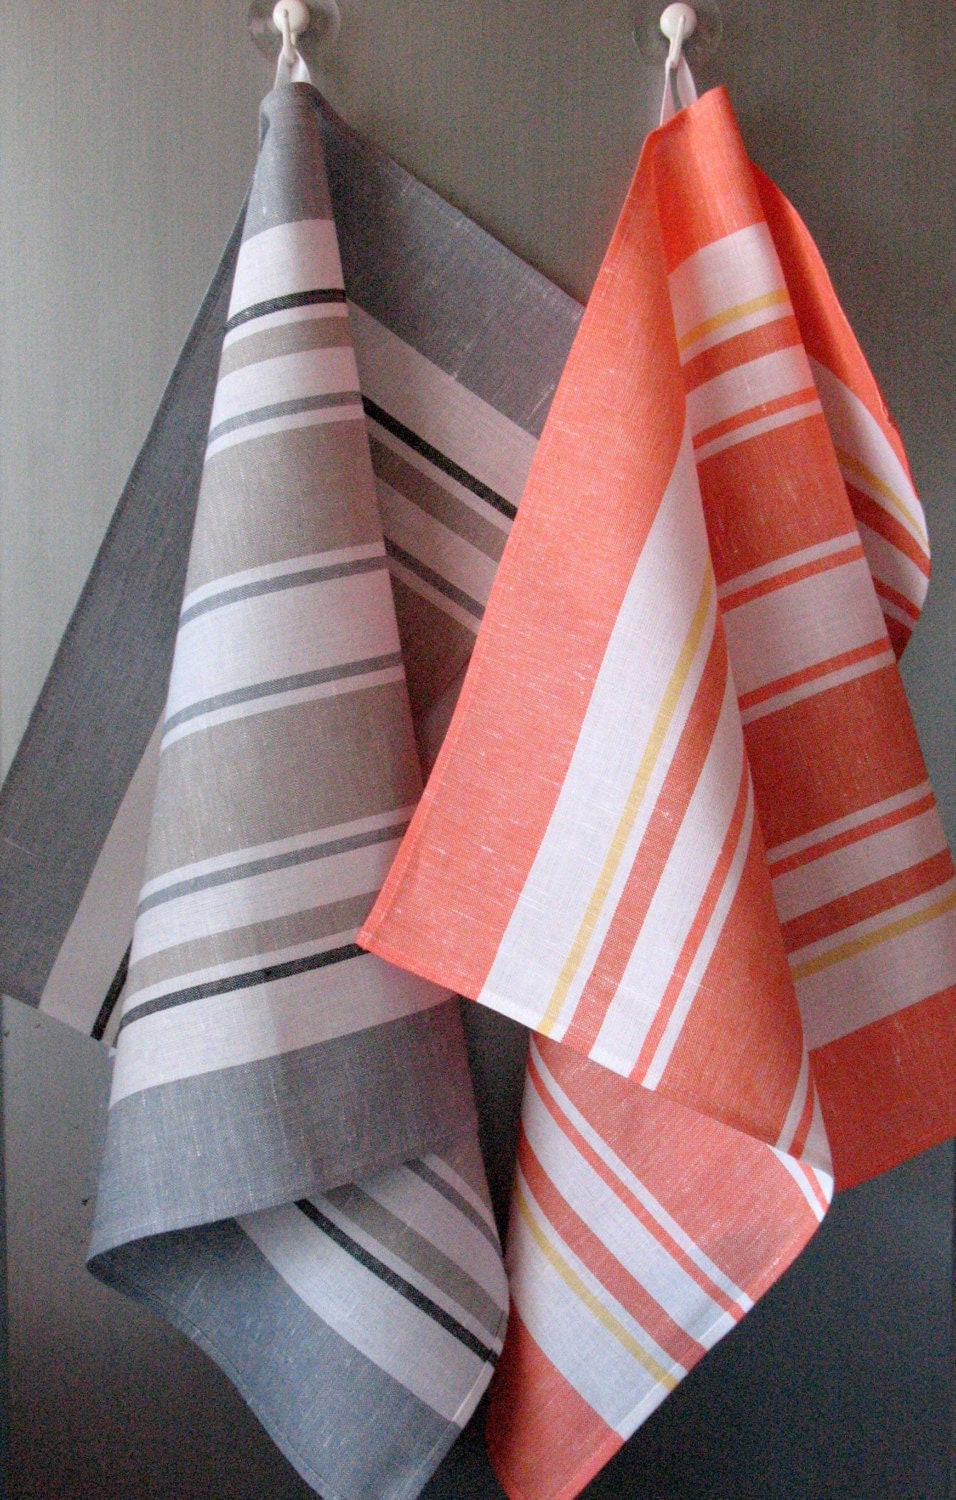 Linen Cotton Dish Towels - Tea Towels set of 2 - Coloredworld